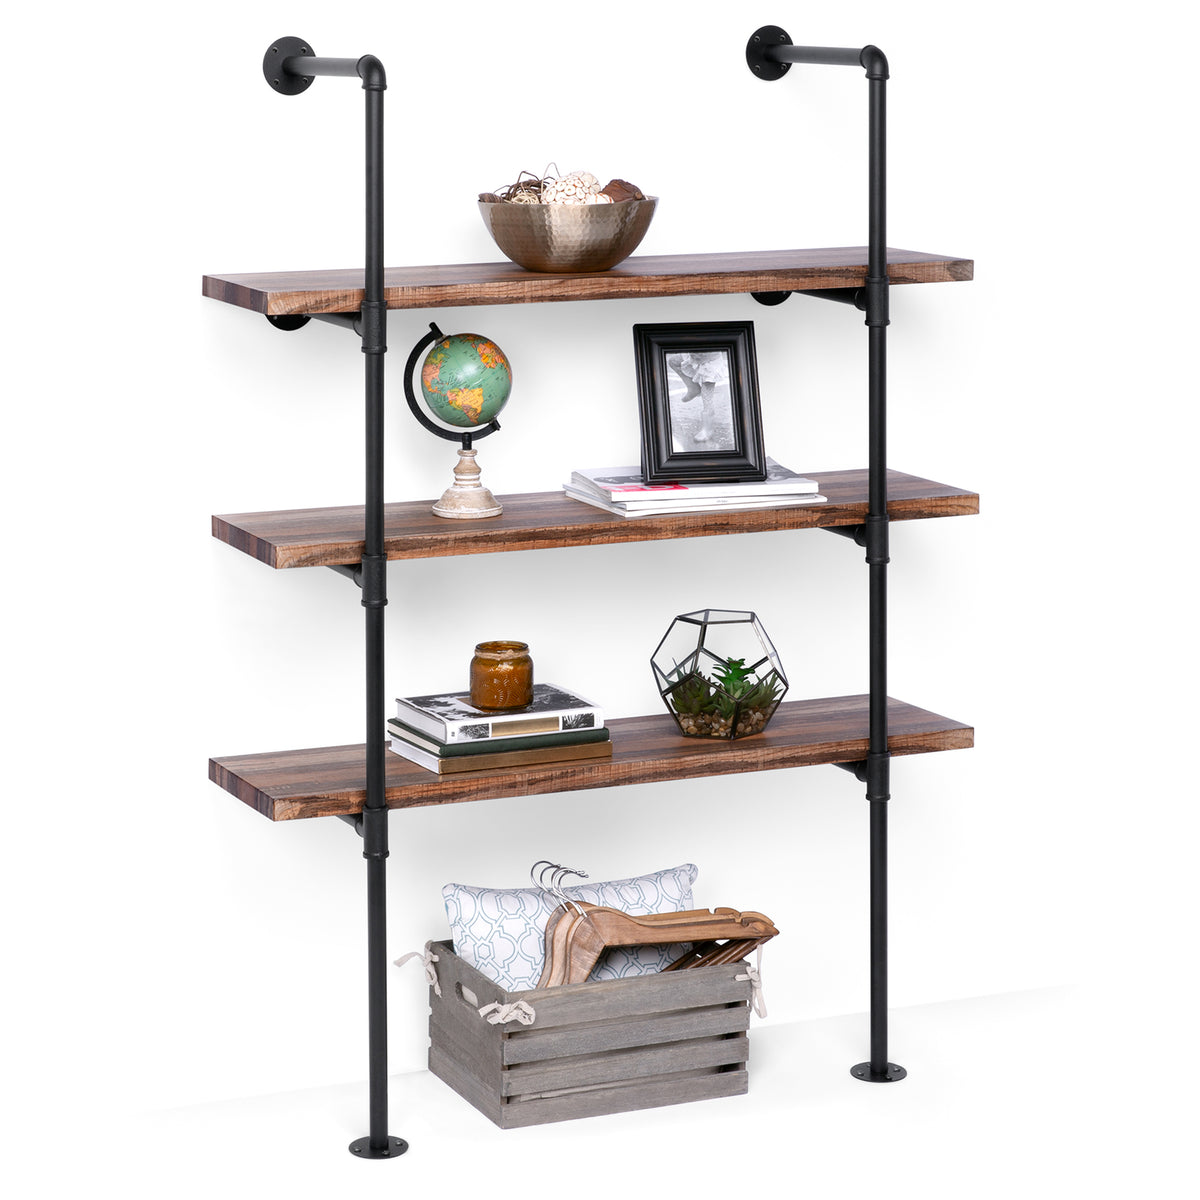 Shop 4-Tier Industrial Wall-Mounted Iron Pipe Bracket DIY Bookshelf Frame from Best Choice Products on Openhaus